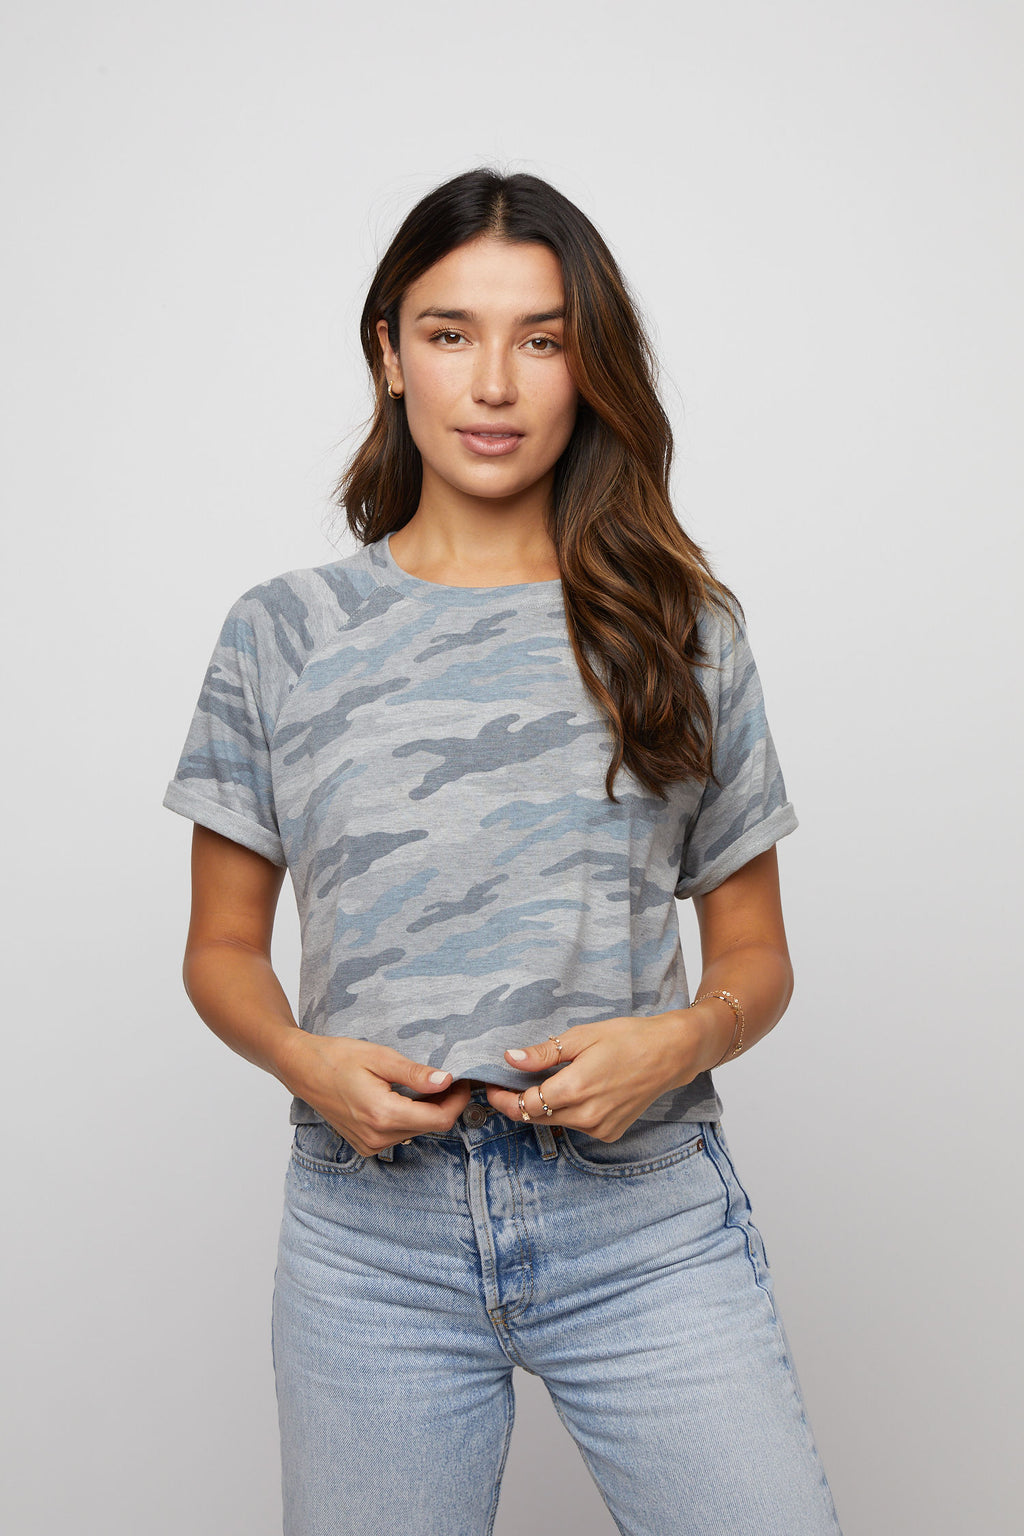 French Terry Tee - Camouflage - Made in USA